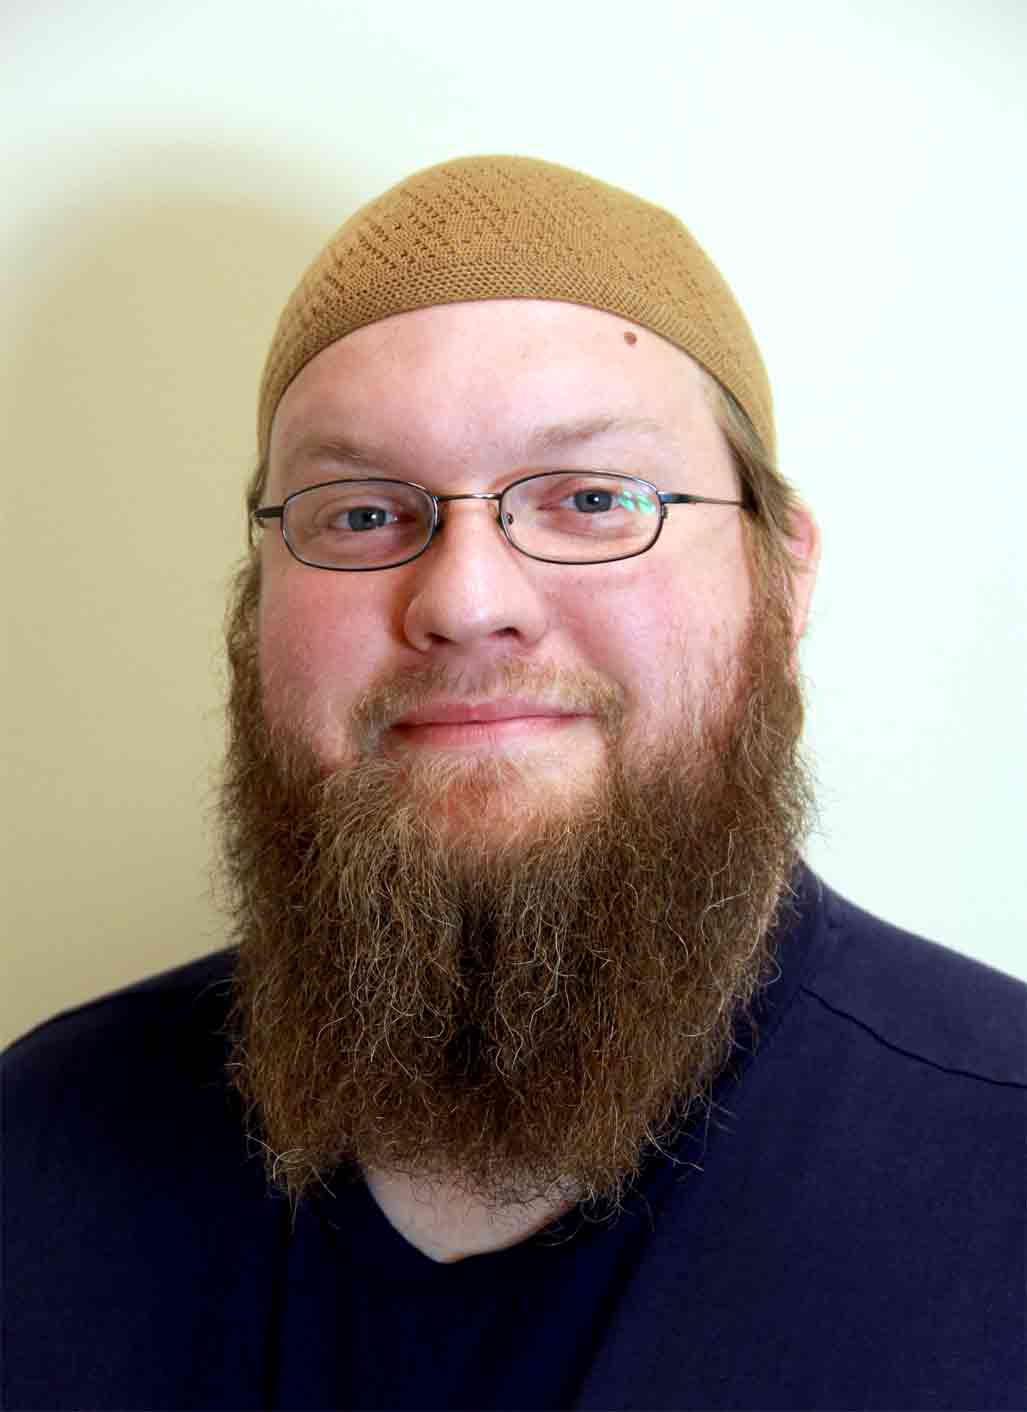 Duston Barto, an advocate for religious liberty and civil rights, pictured here with long beard and brown kufi cap.